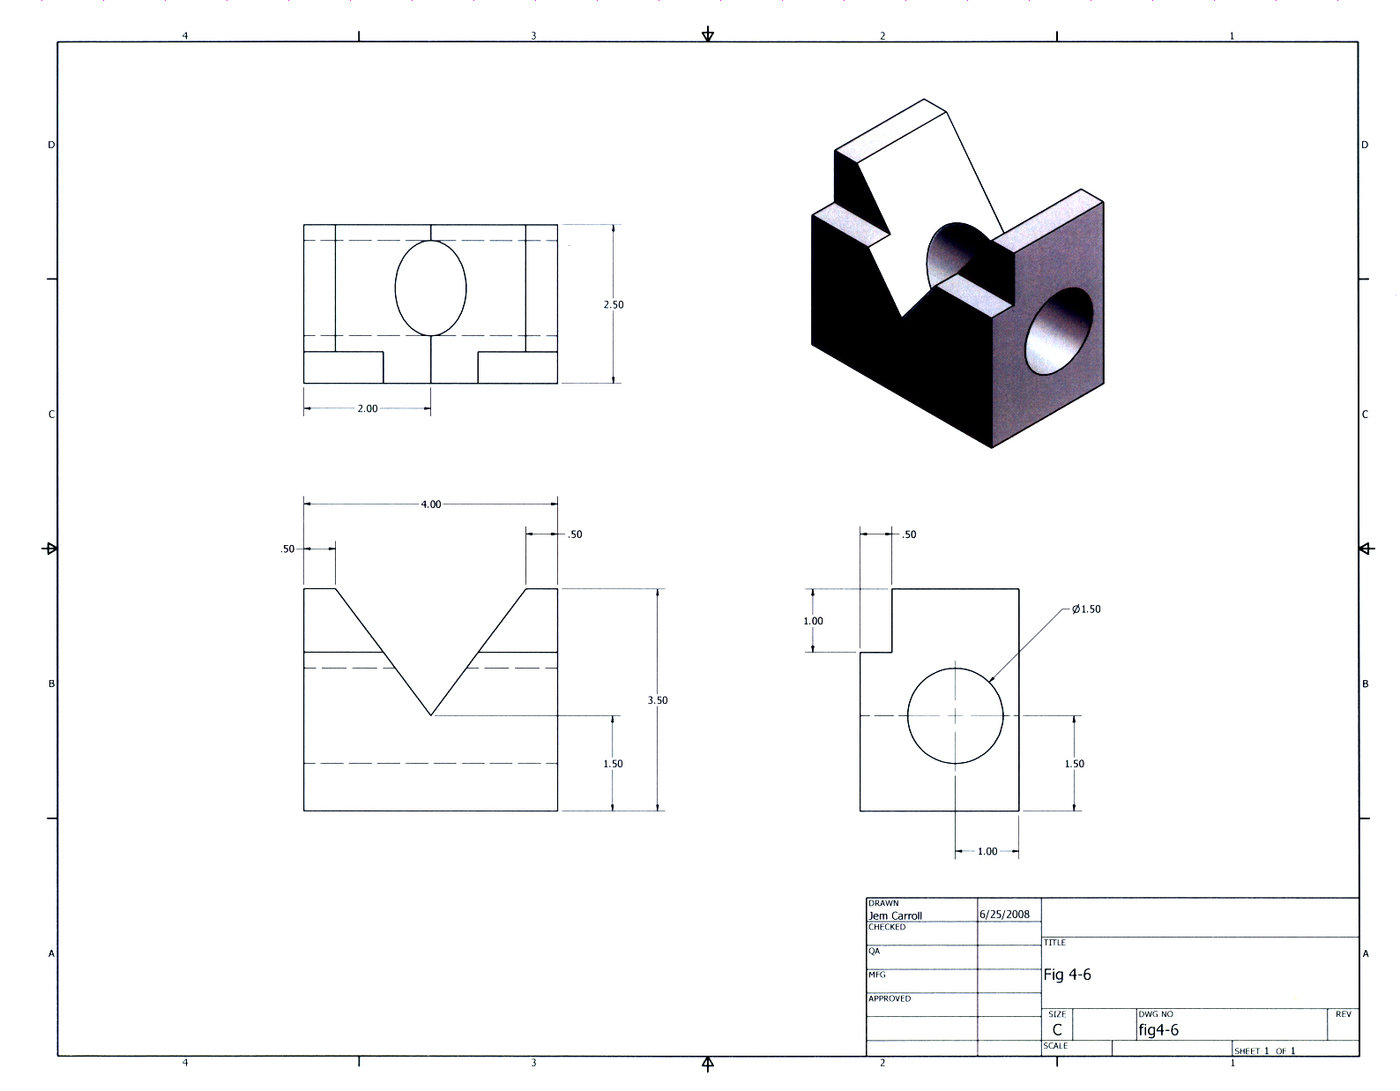 Mechanical Drawings done in Inventor by Jem Carroll at